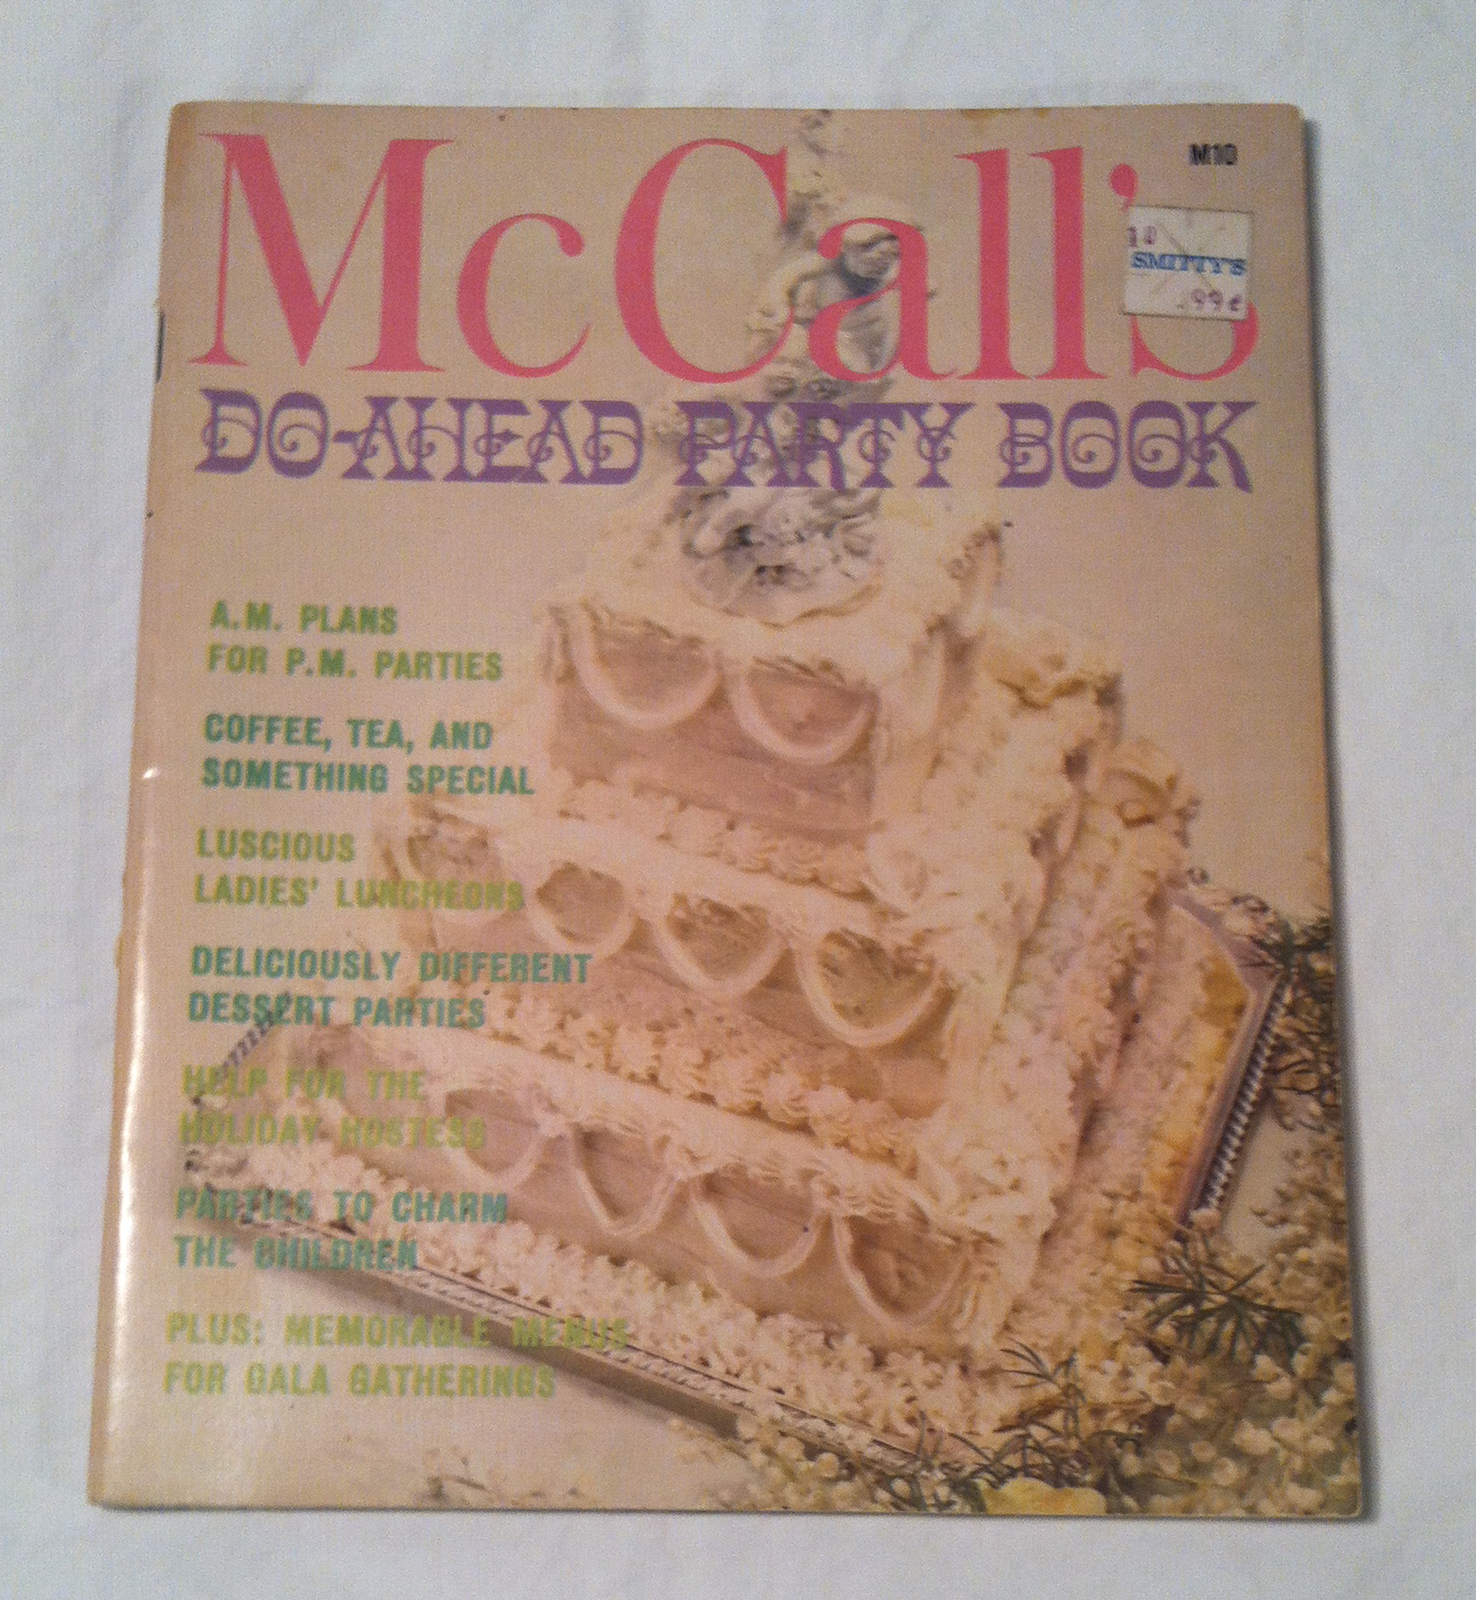 Primary image for Vintage McCall's Do-Ahead Party Book 1970s cookbook holiday birthday recipes